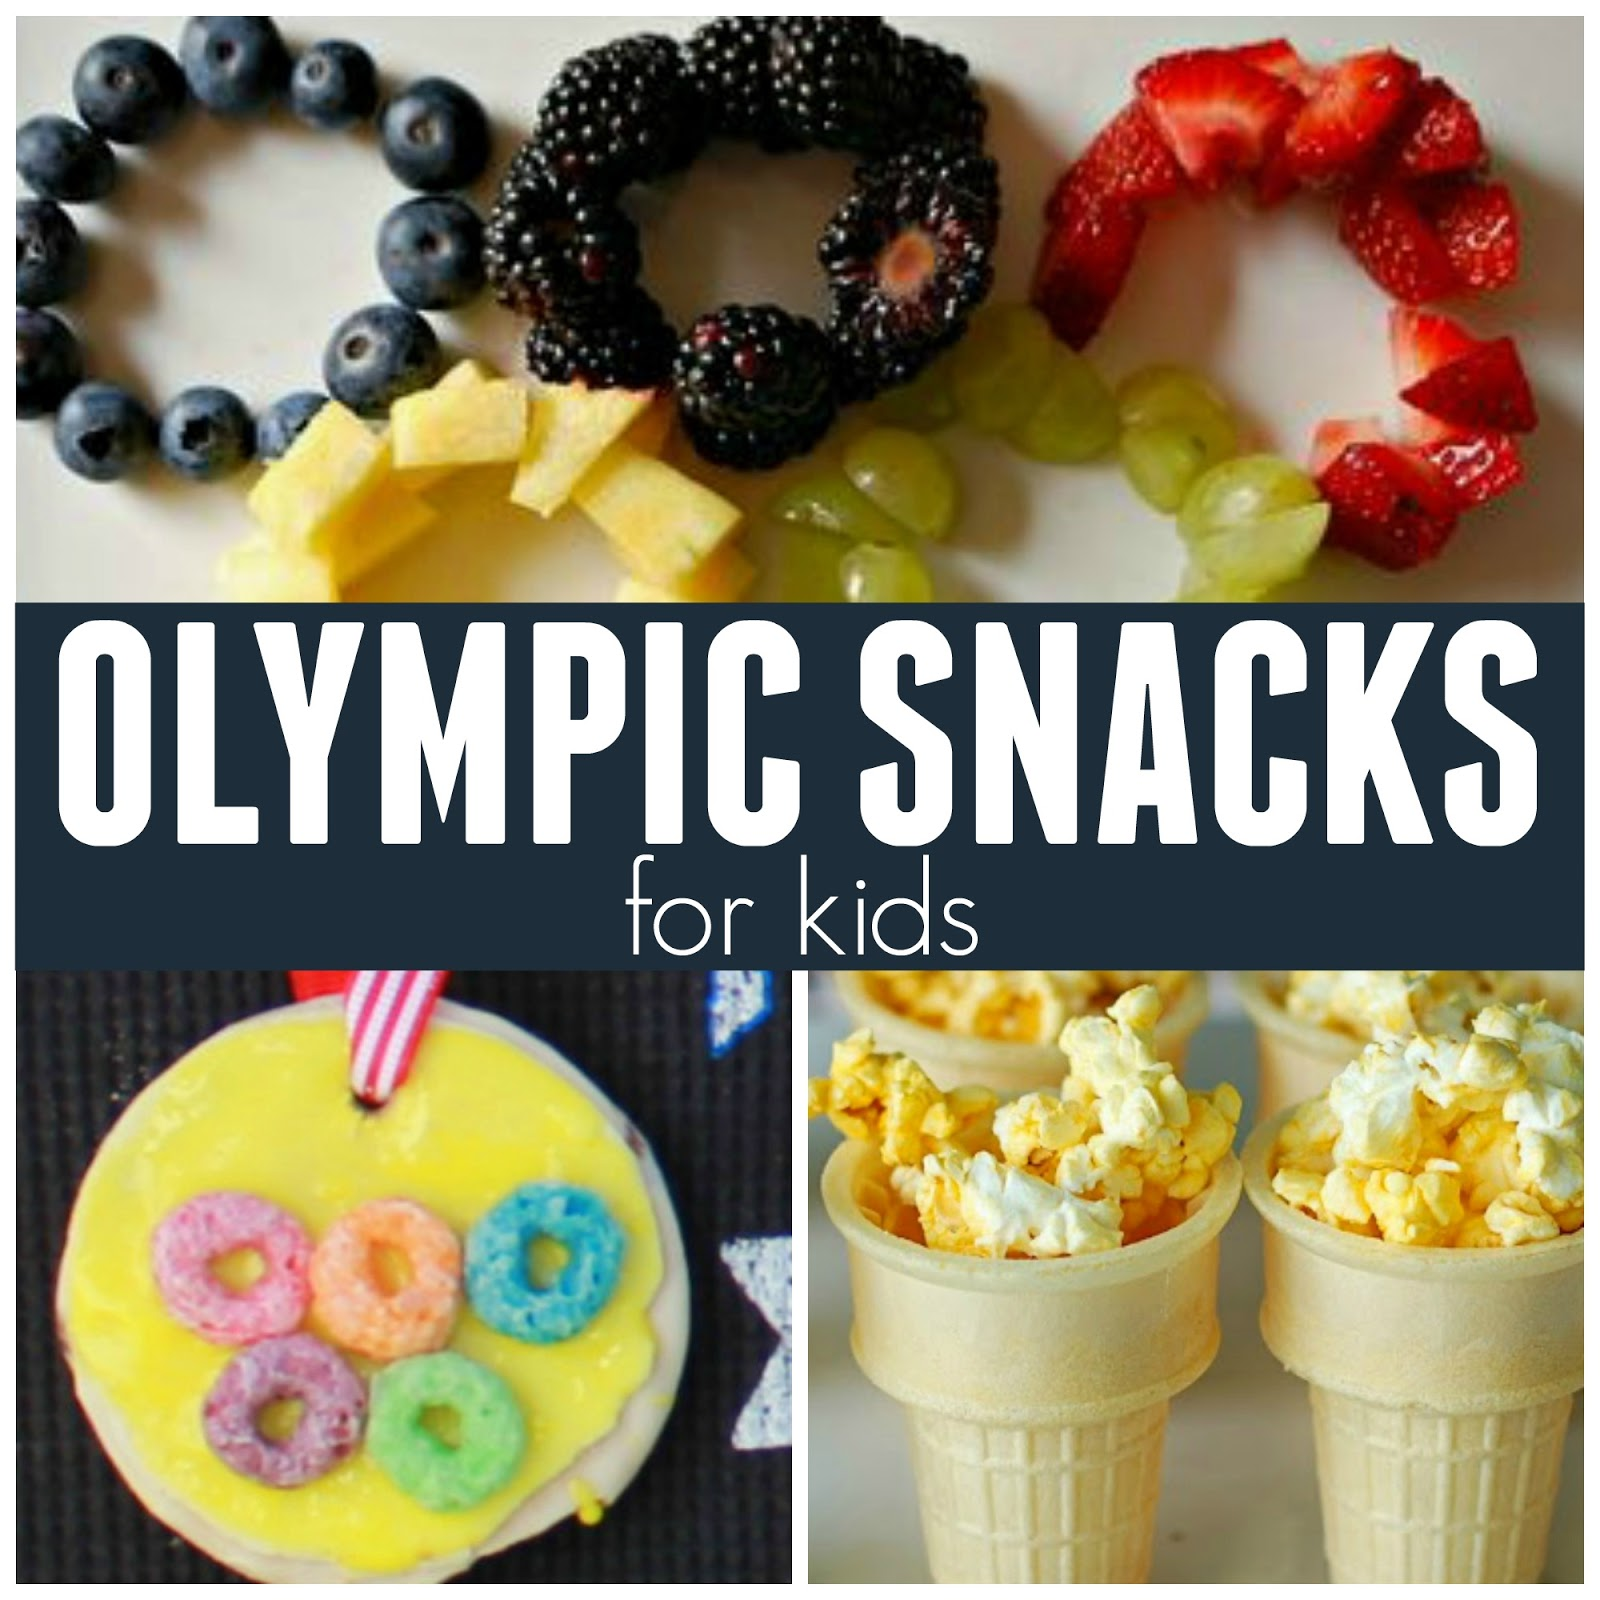 Snacks Are A Fun Way To Introduce Theme And Can Also Be Great Work On Fine Motor Skills Simple Things Like Sorting